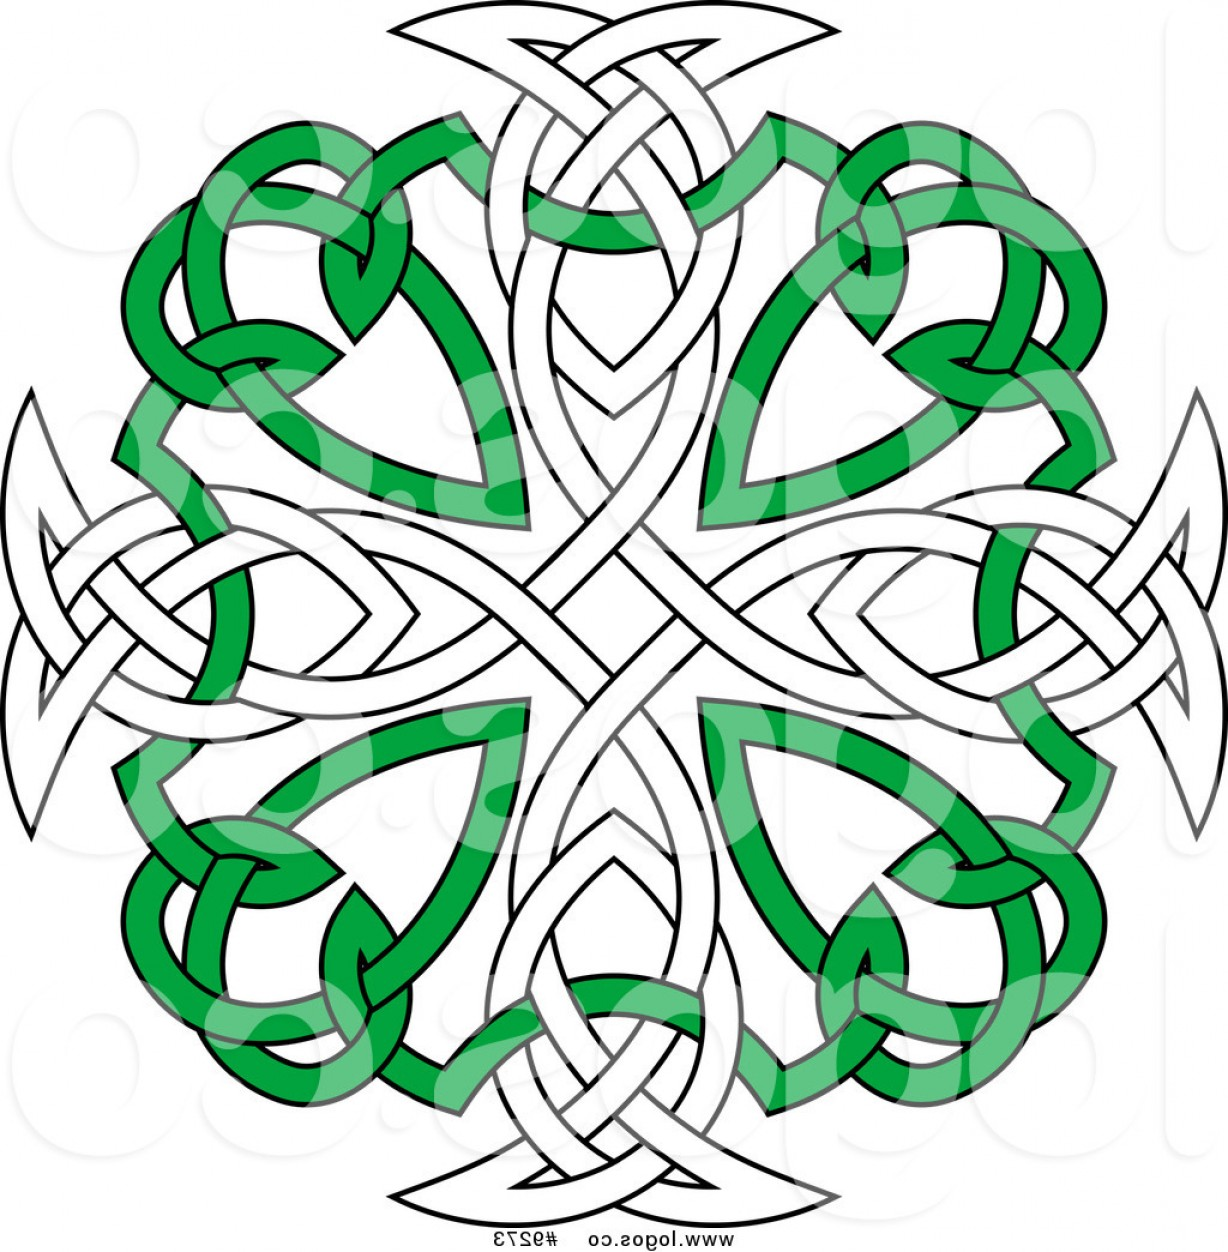 Cool Cross Vector Clip Art: Royalty Free Clip Art Vector Green And White Celtic Knot Cross Logo By Vector Tradition Sm